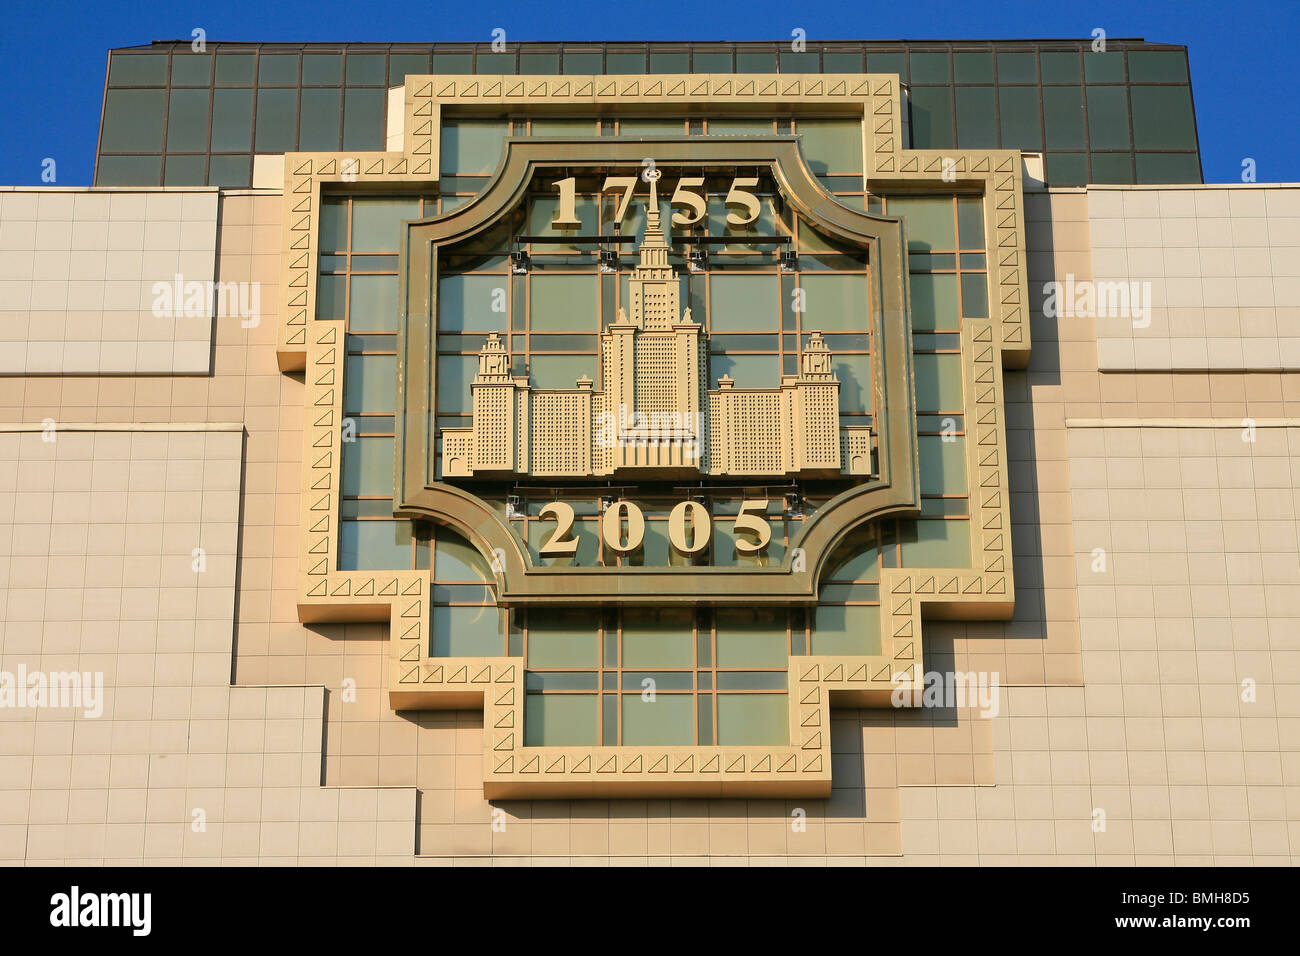 The coat of arms of the Lomonosov Moscow State University on the facade of its Library - Stock Image